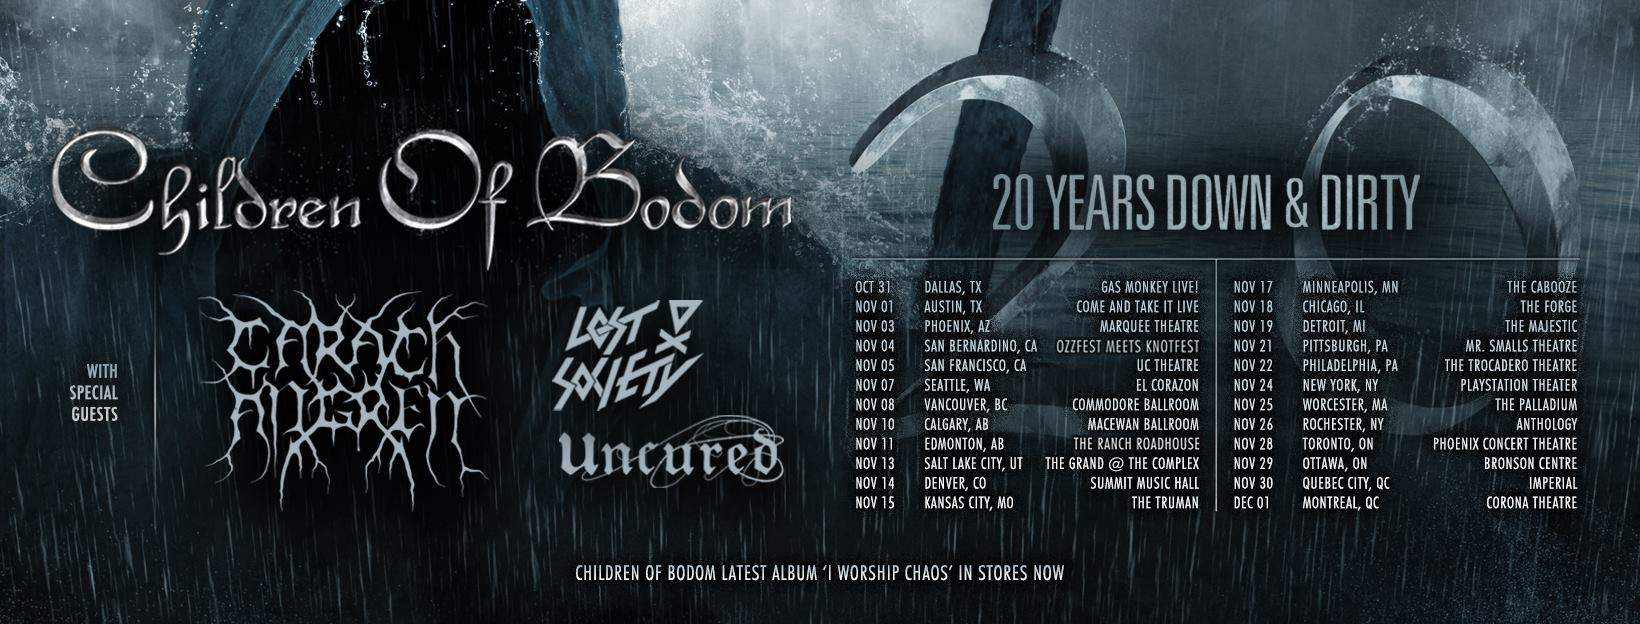 Children Of Bodom Tour 2017